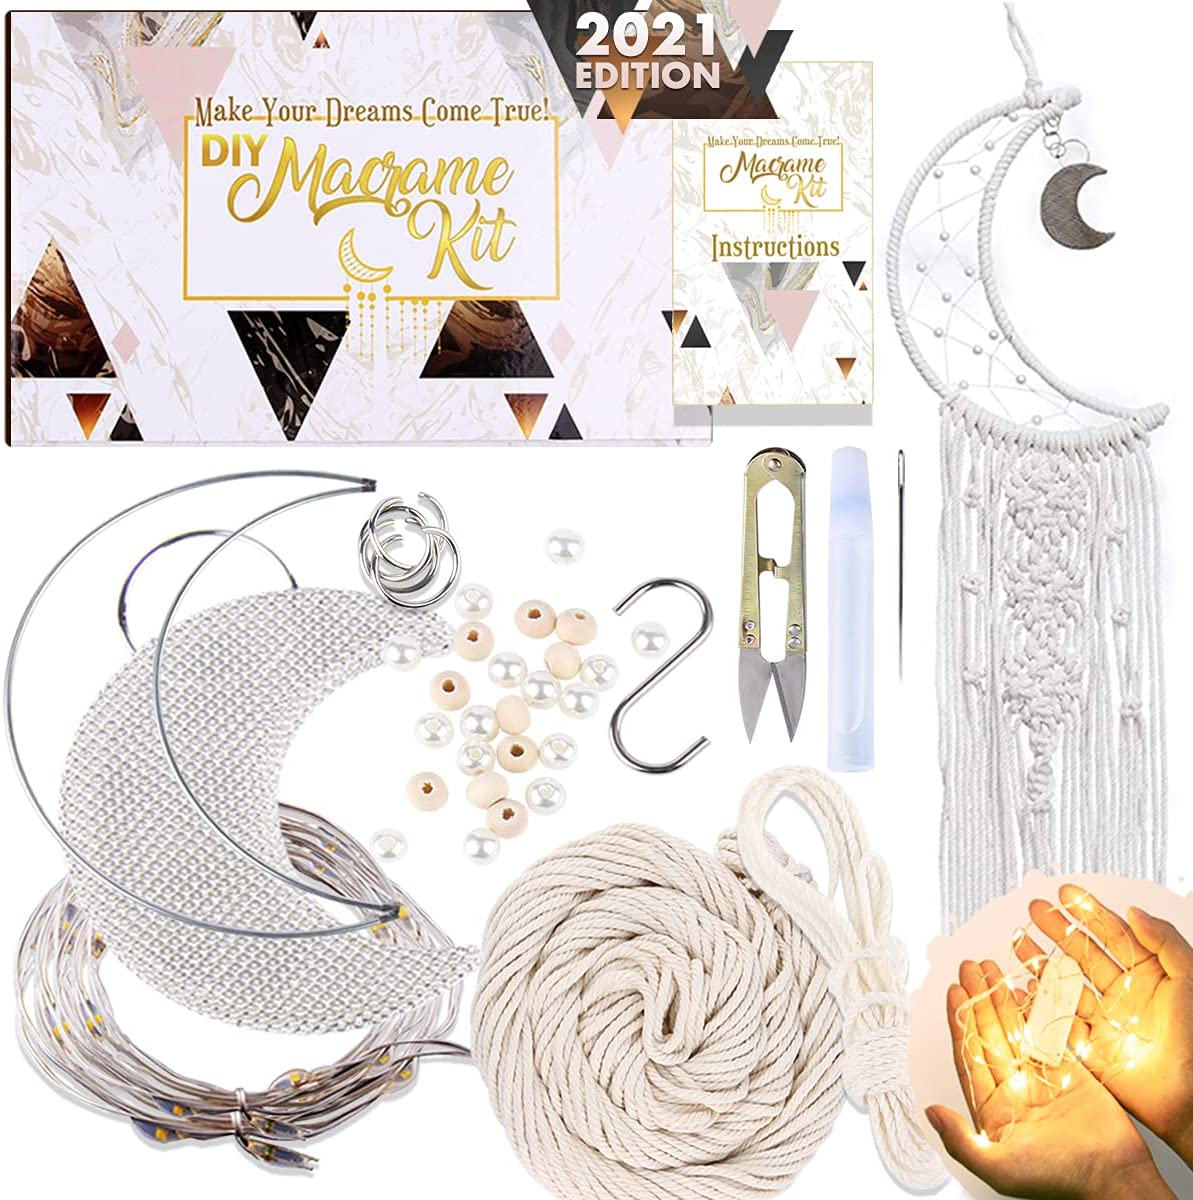 Innofans Moon Dream Catchers Room Decor - Moon Decor Hippie Room Decor Nursery Home Bedroom Art Witchy Ornament Celestial Decors Aesthetic LED Lights Hook Beads Gifts Crafts For adults Women Teen girl